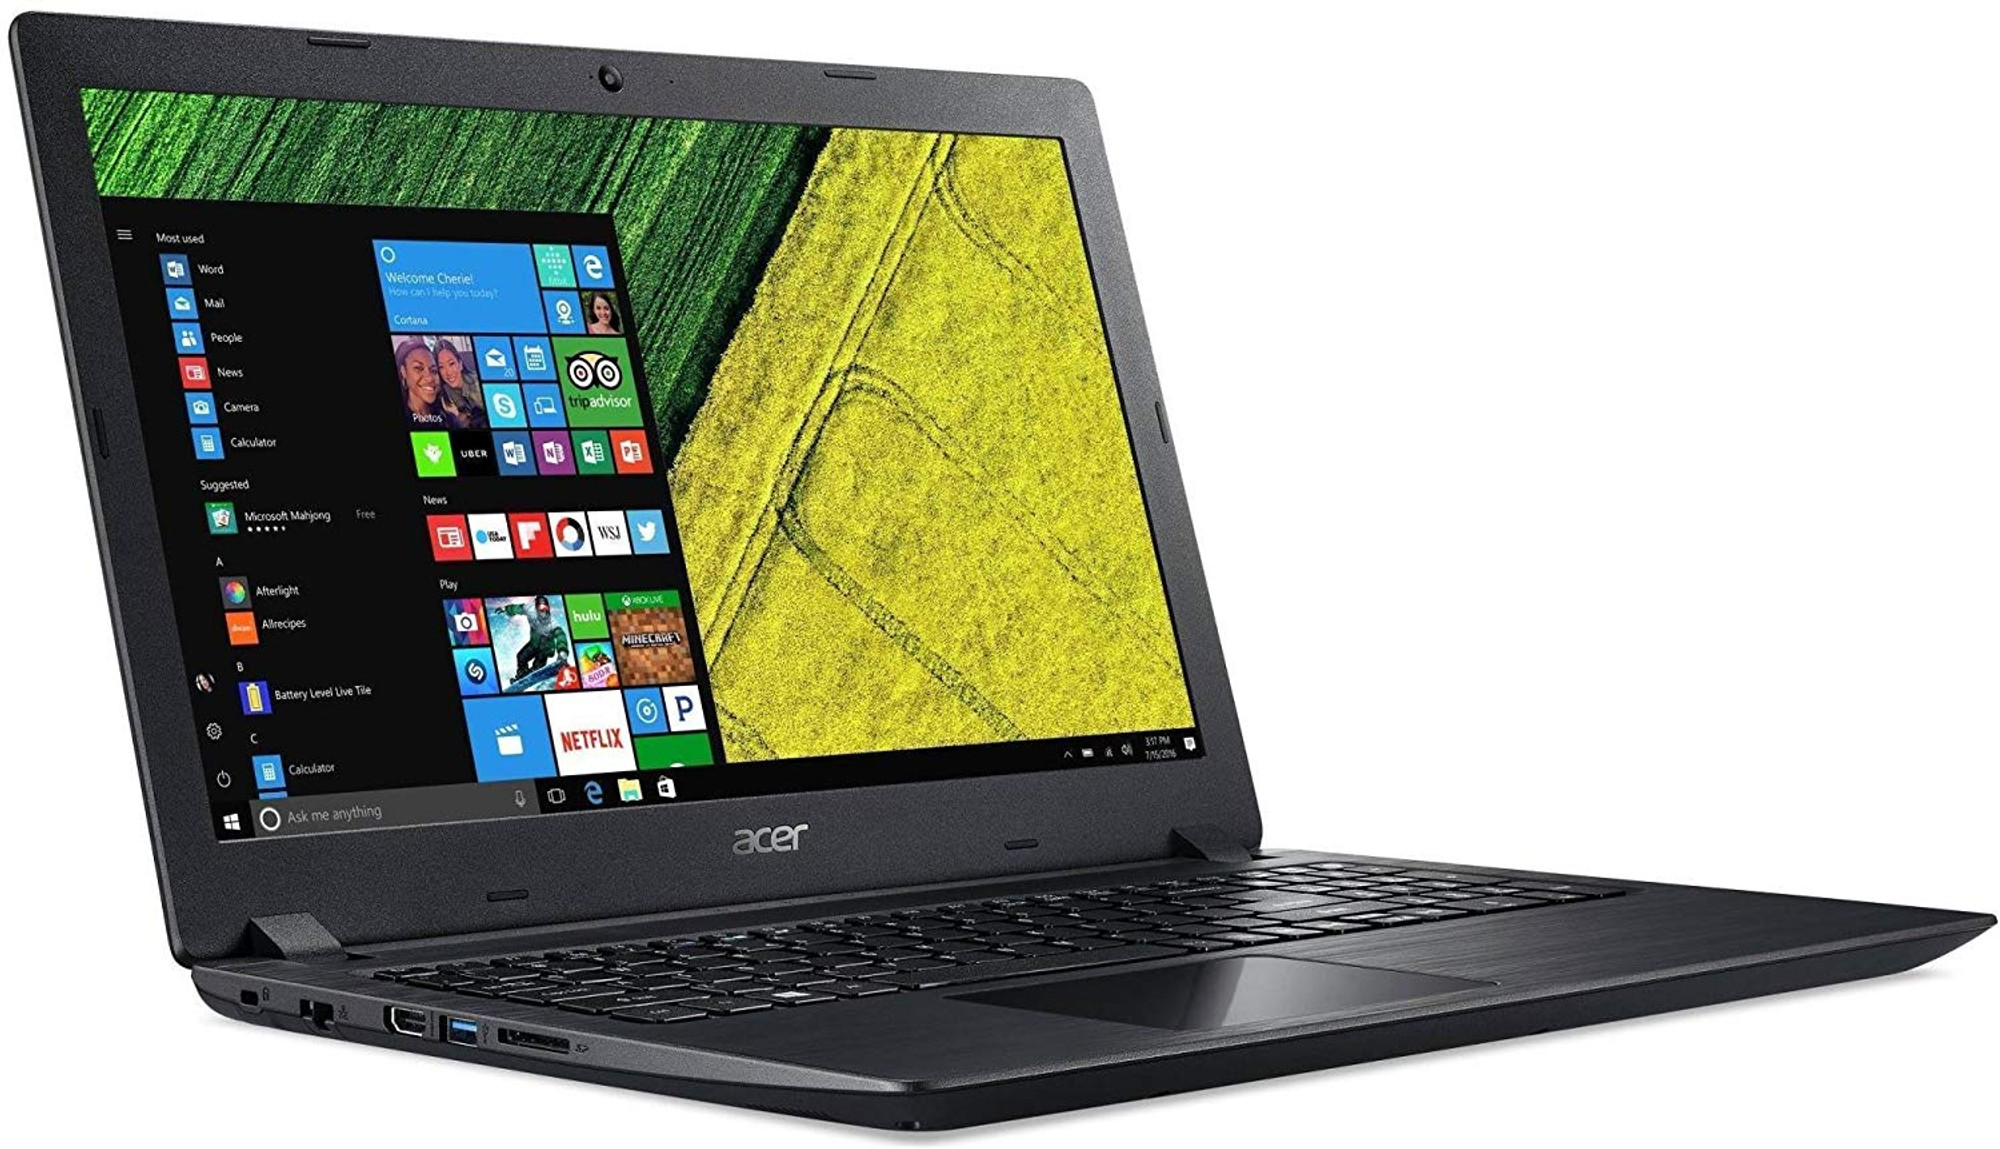 Acer Aspire 3 15 6 Laptop Amd A Series A6 9220e 1 60 Ghz 8gb Ram 1tb Hdd Win10h